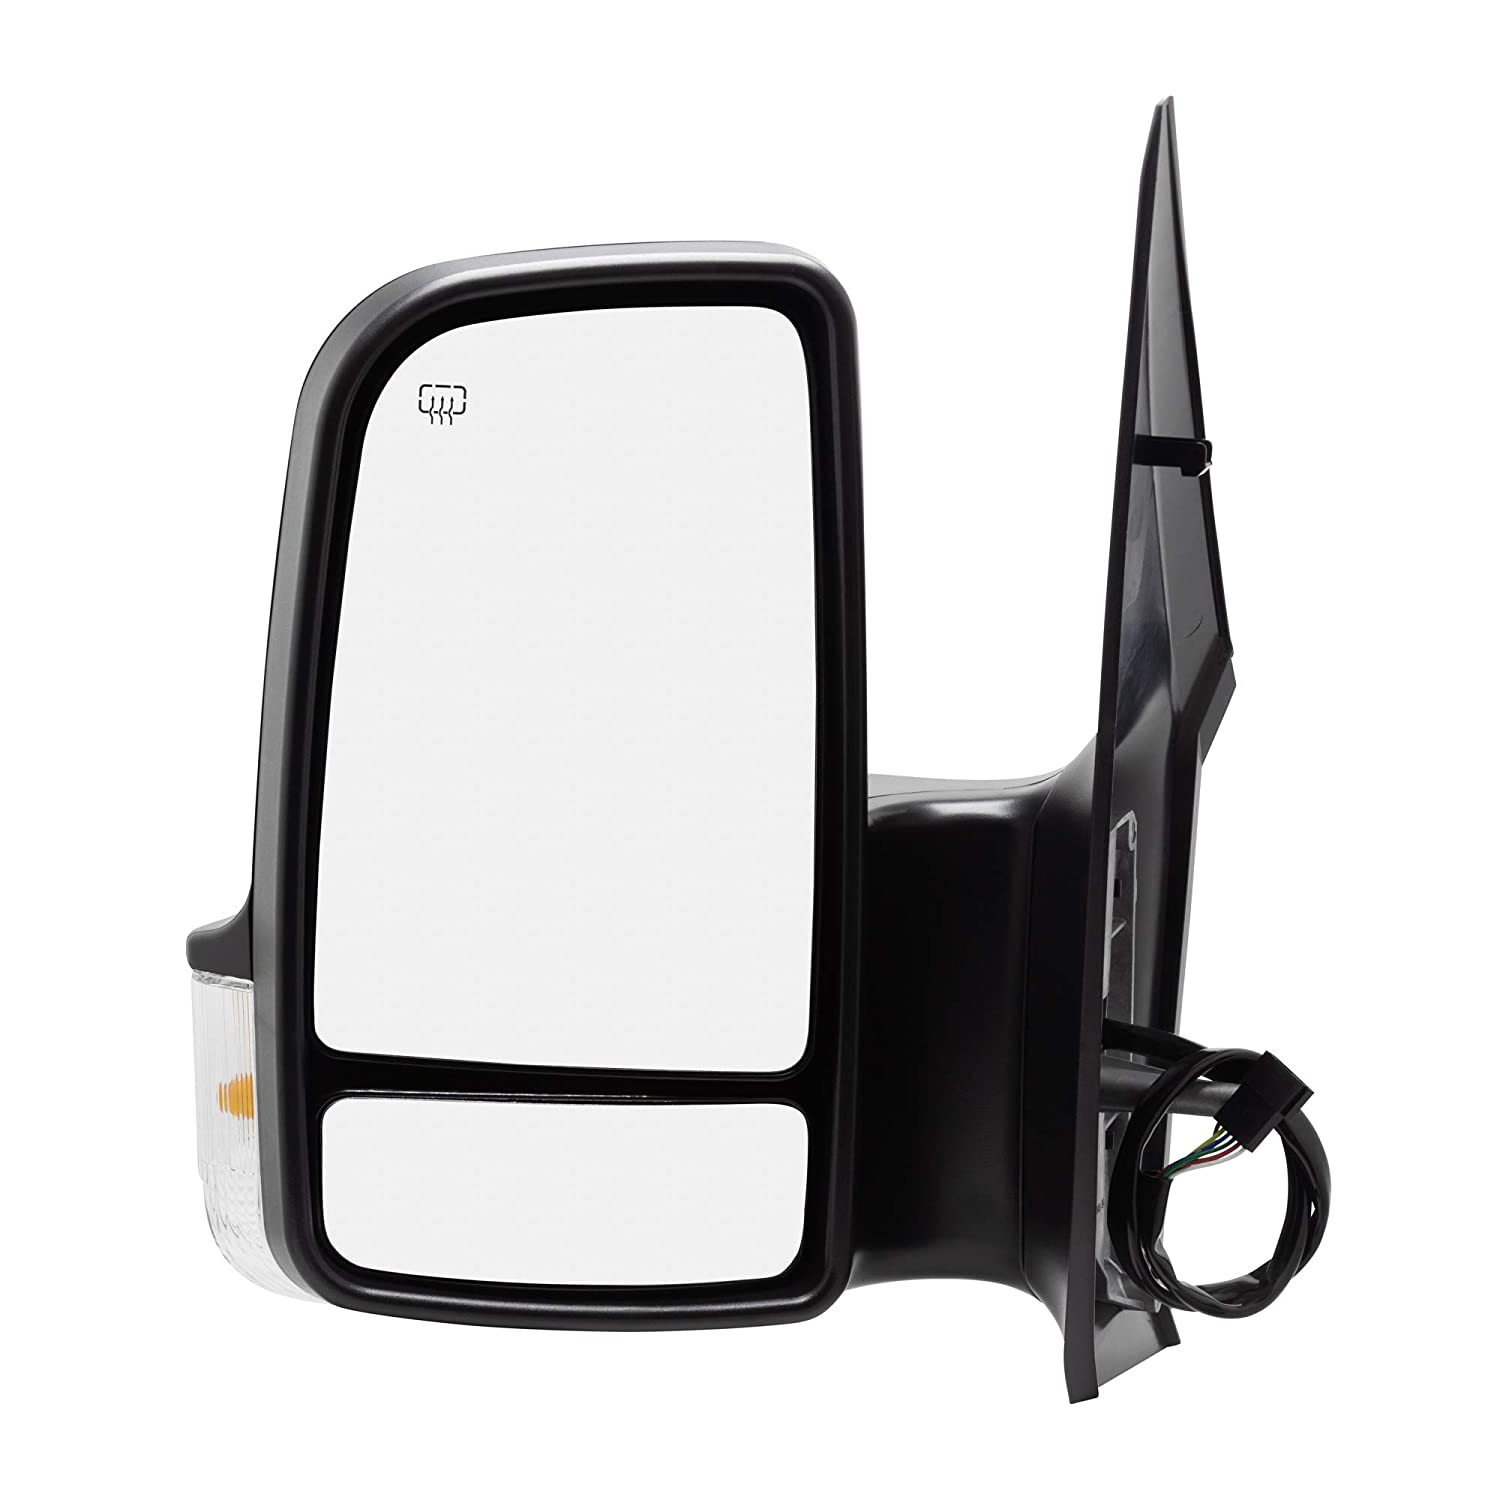 Spieg MB1320114 Side Mirror Replacement for Dodge Freightliner Mercedes Sprinter Power Heated w//Turn Signal Light Driver Left